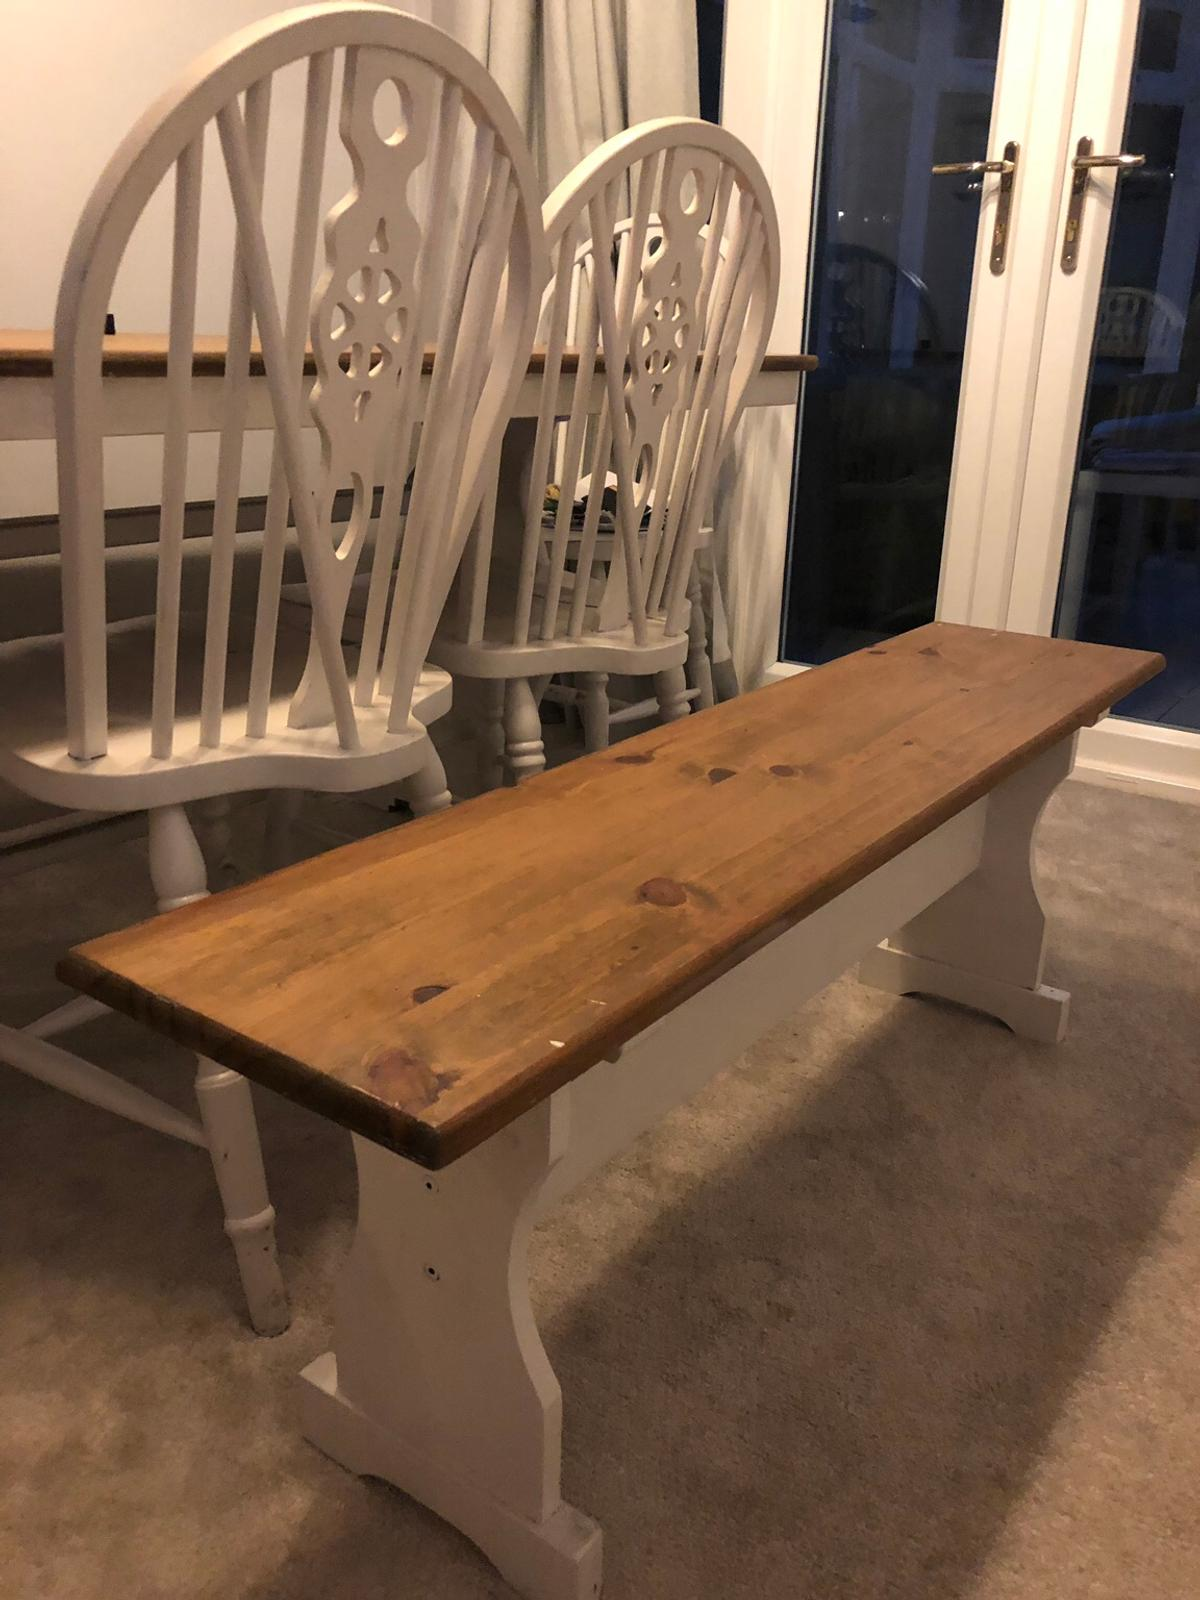 Shabby Chic Farmhouse Table 4 Chairs Bench In B91 Solihull For 150 00 For Sale Shpock